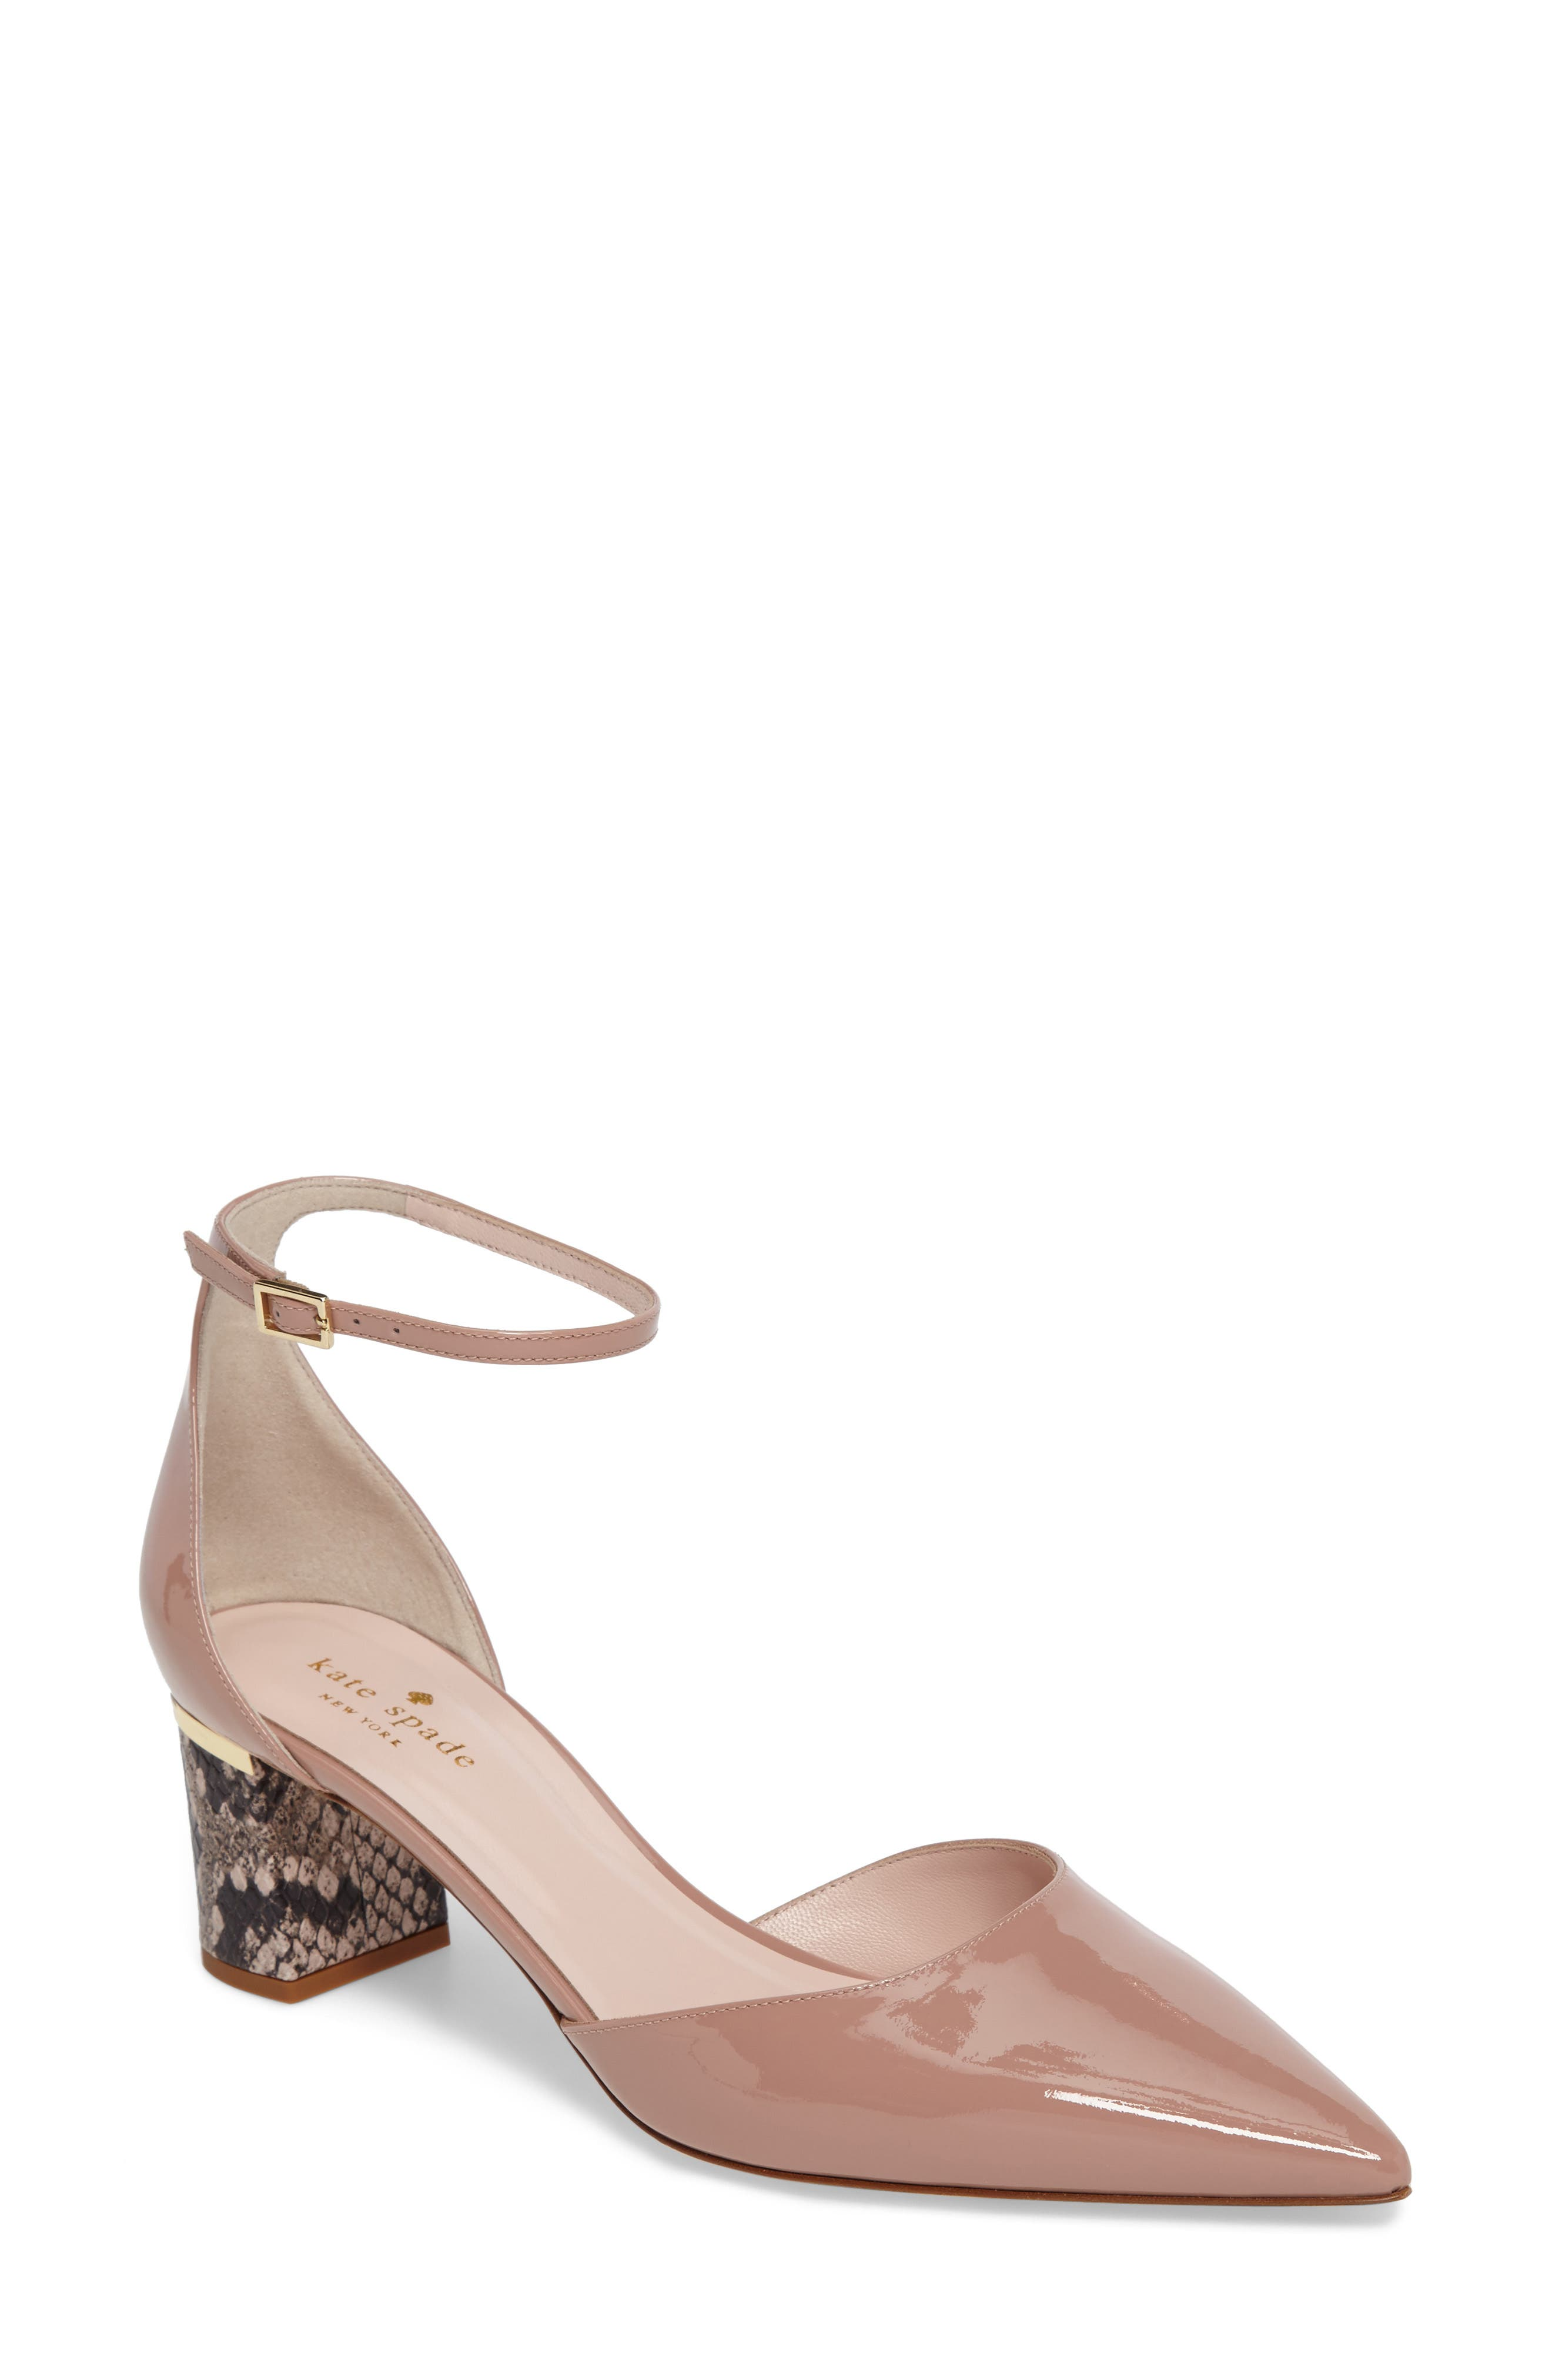 Alternate Image 1 Selected - kate spade new york marylou pump (Women)